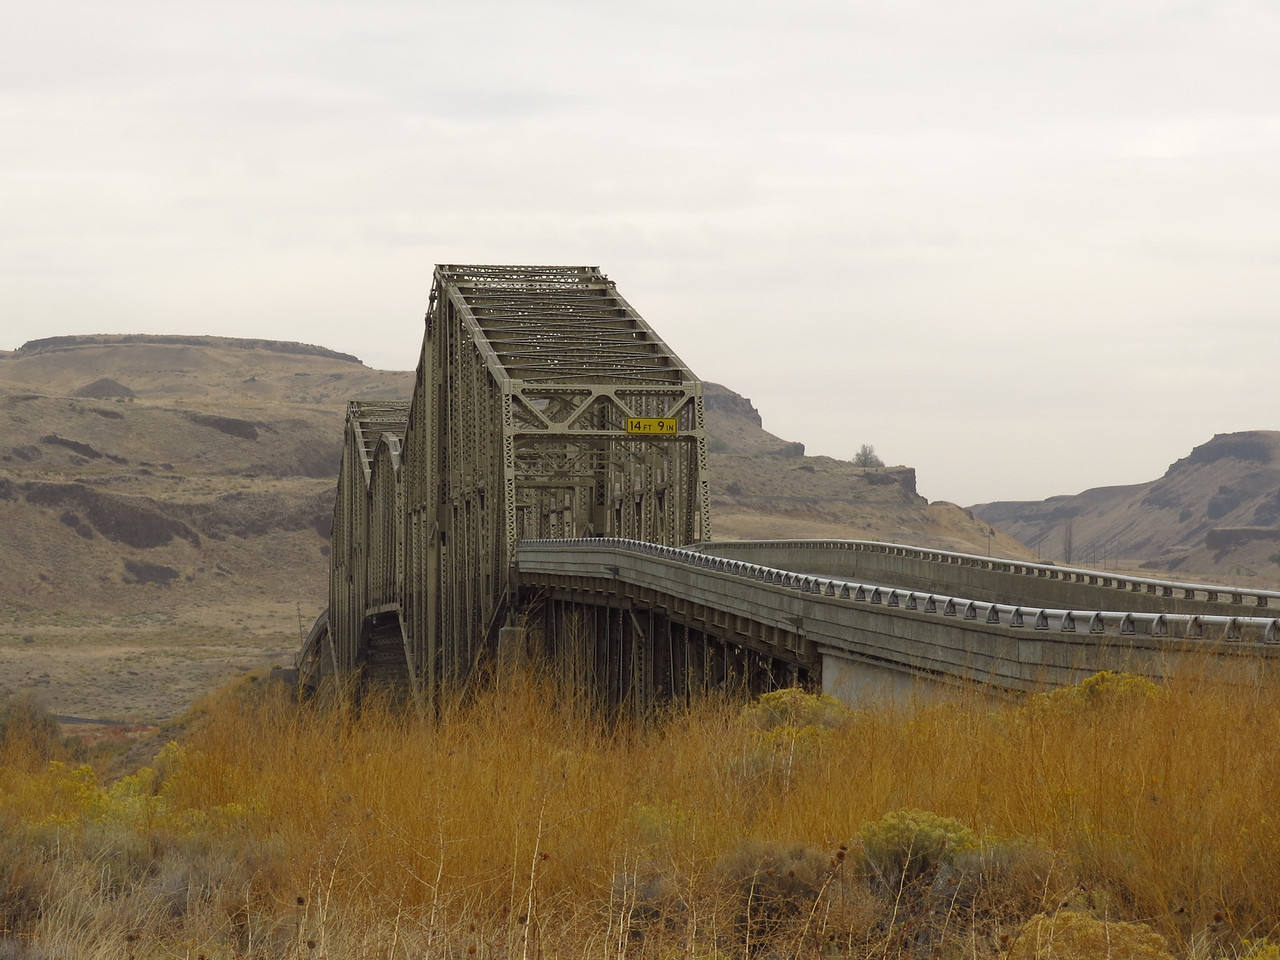 The highway bridge at Lyons Ferry, seen from the south side of the river.  We crossed the bridge and headed north on Washington 261 to the turn-off for Palouse Falls.